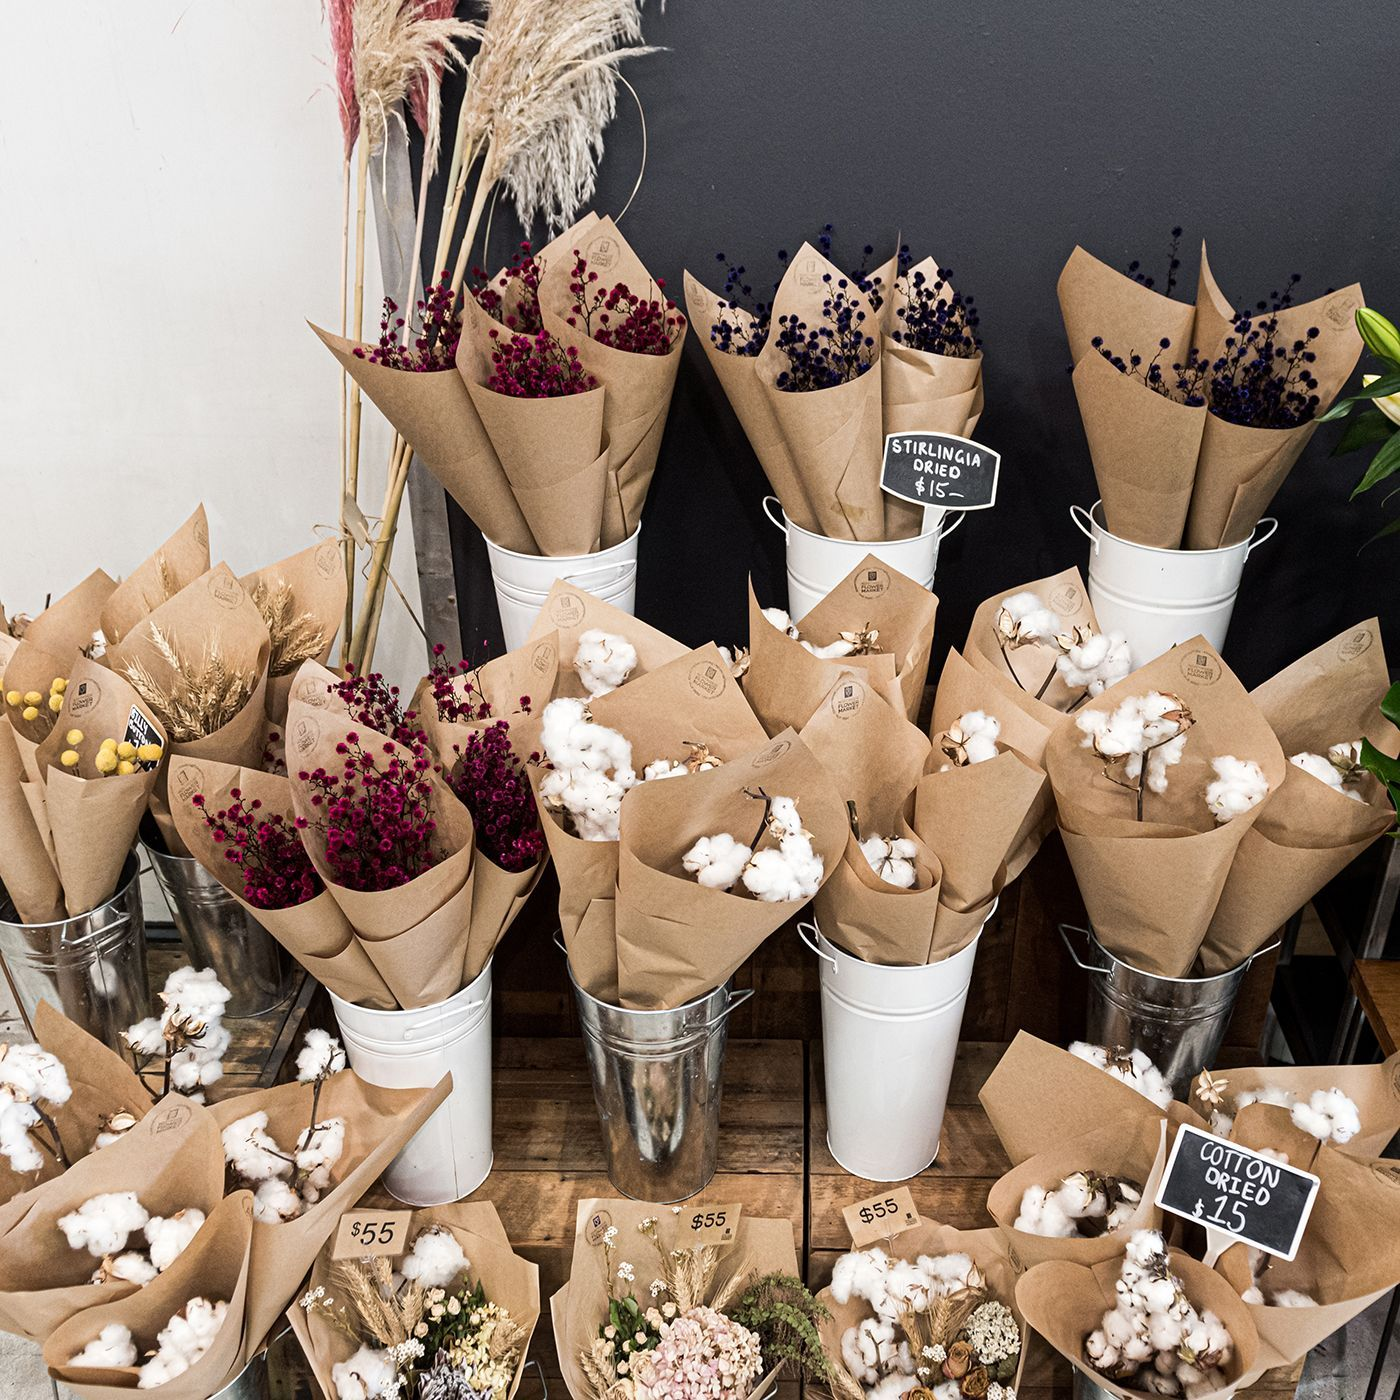 Our Range Of Dried Flowers Is Growing From Billy Buttons And Pampas Grass To Cotton Strilingia And More Dried Flower Bouquet Flowers Bouquet Gift Flower Bar